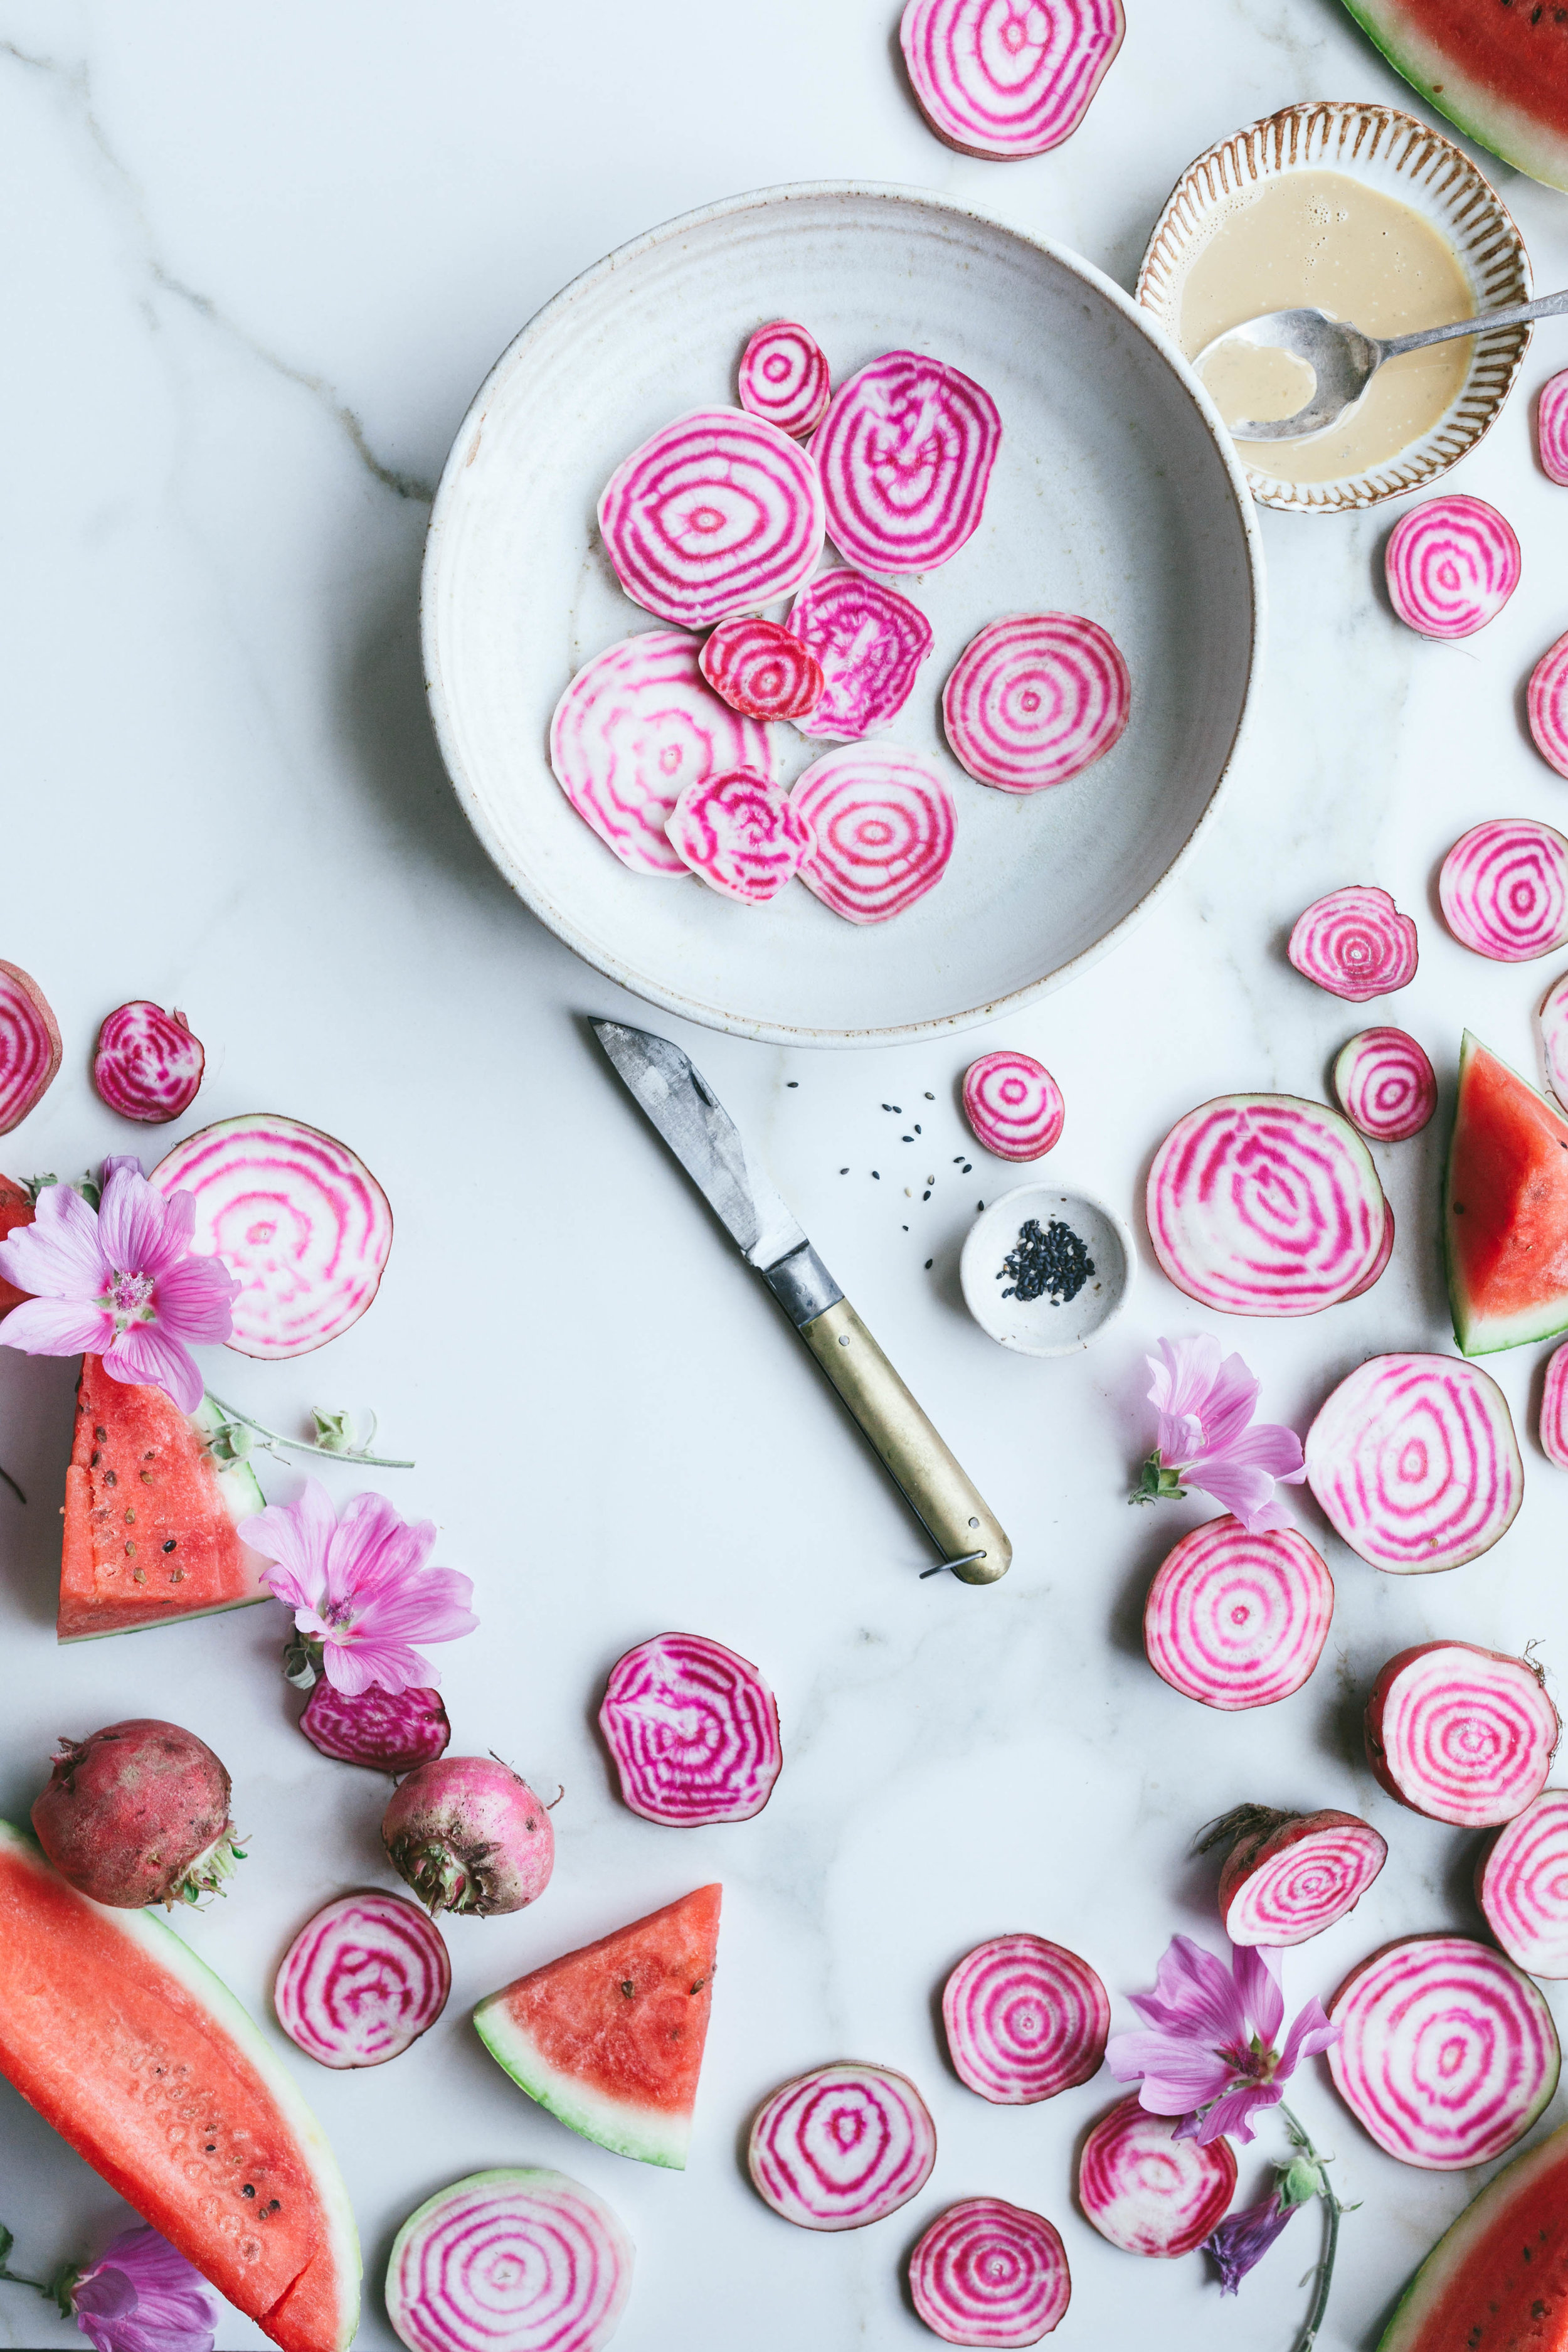 Watermelon and candy beetroot salad recipe - The Little Plantation